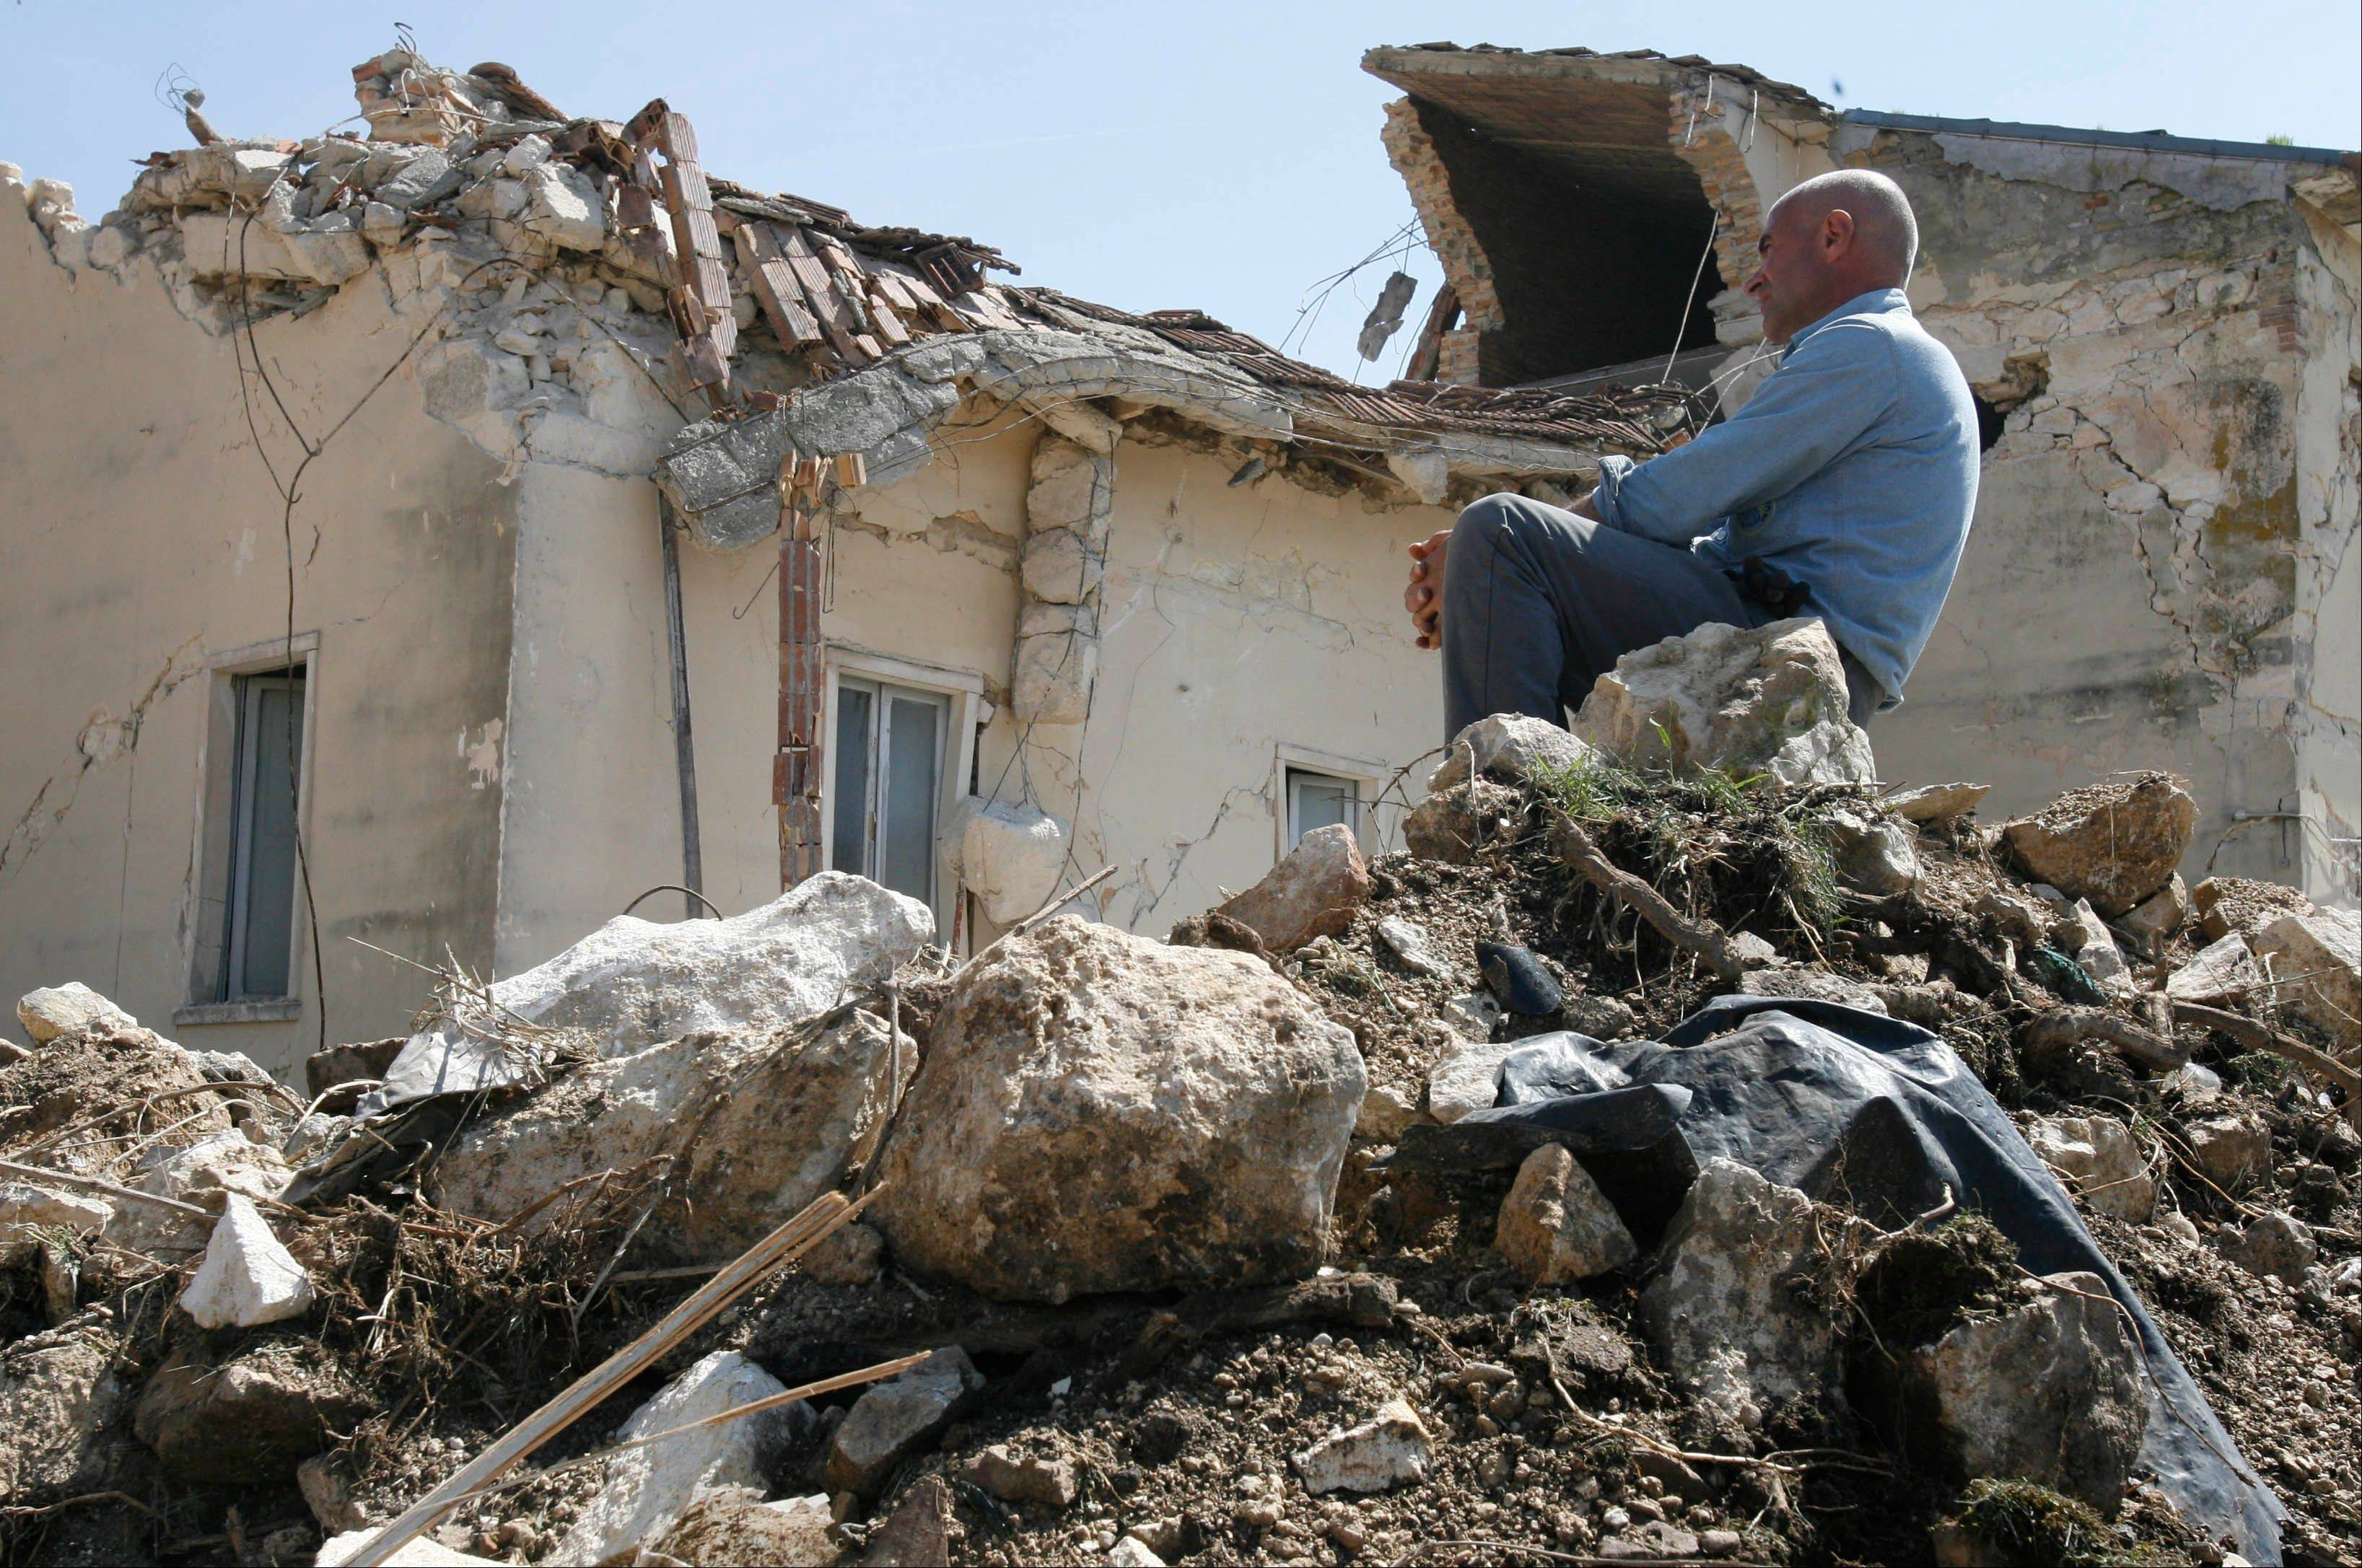 A man sits on rubbles in the village of Onna on April 7, a day after a powerful earthquake struck the Abruzzo region in central Italy.